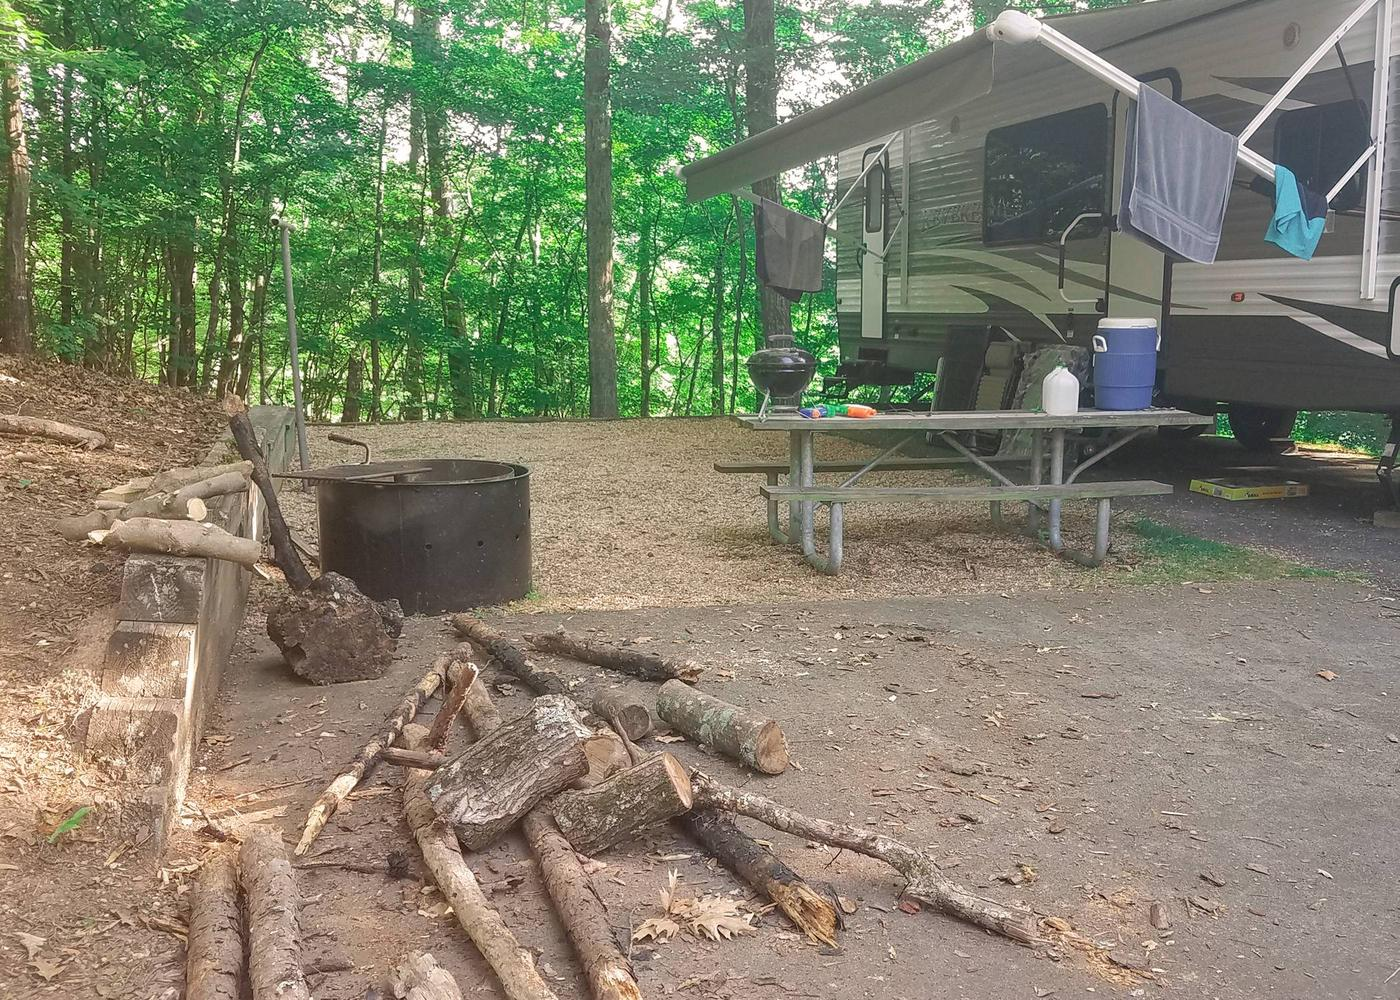 Awning-side clearance, campsite view.Upper Stamp Creek Campground, campsite 18